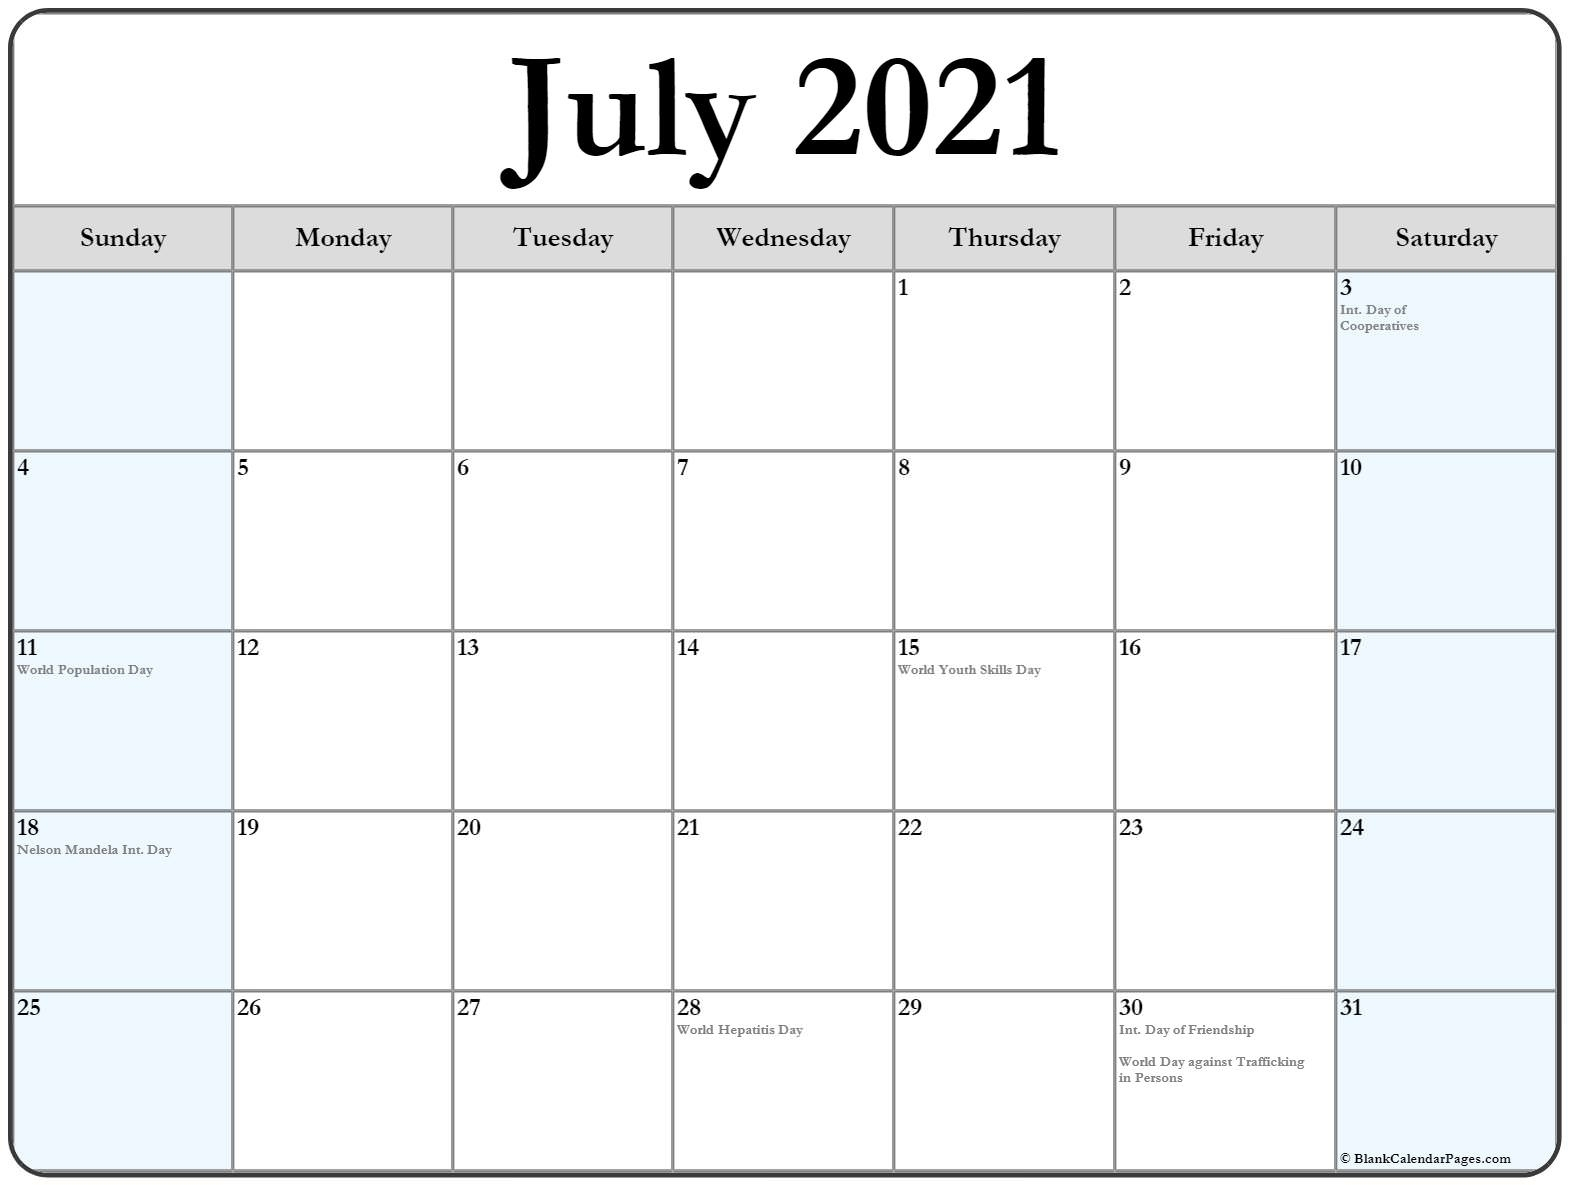 Collection Of July 2021 Calendars With Holidays Blank Calendar July 2020 To June 2021